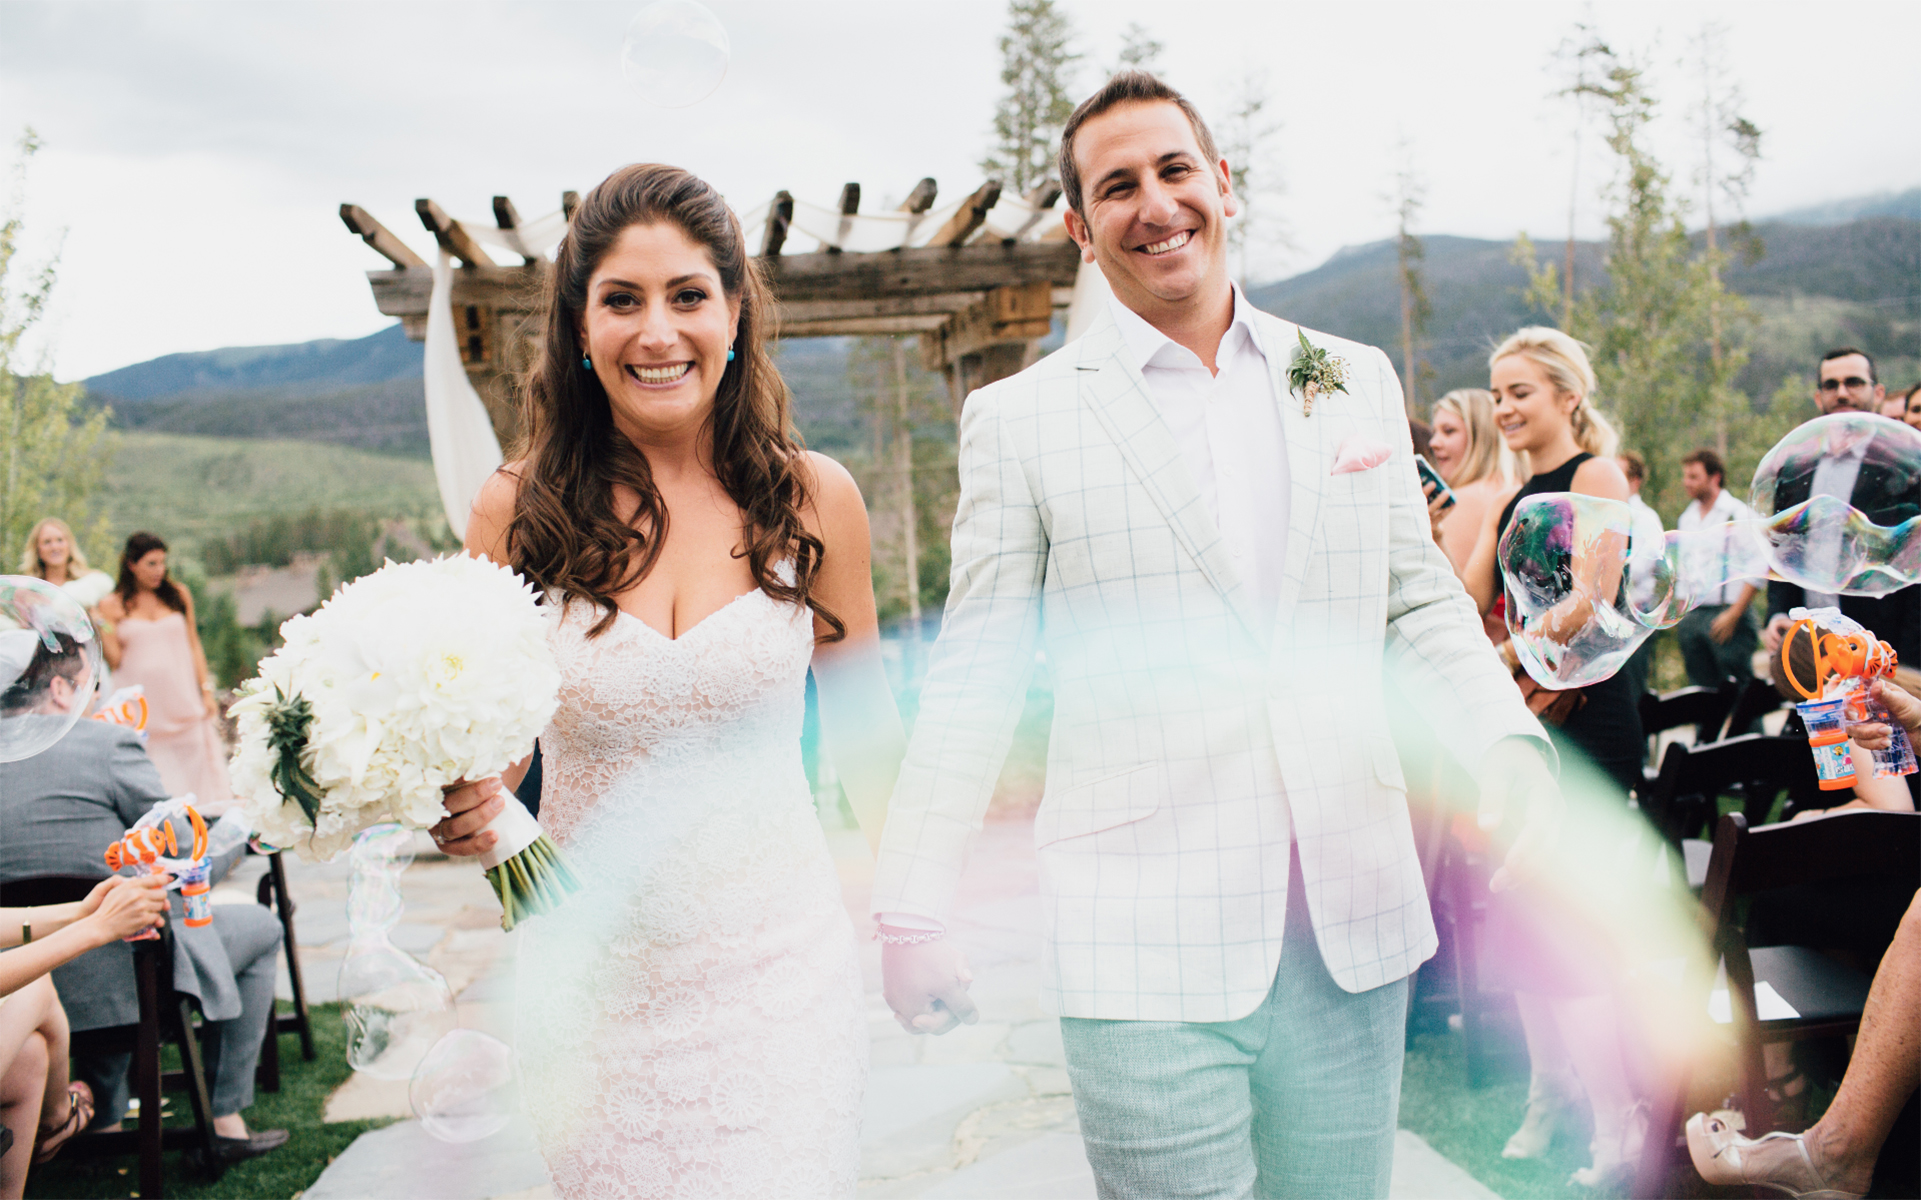 5 Real Weed Weddings in Photos